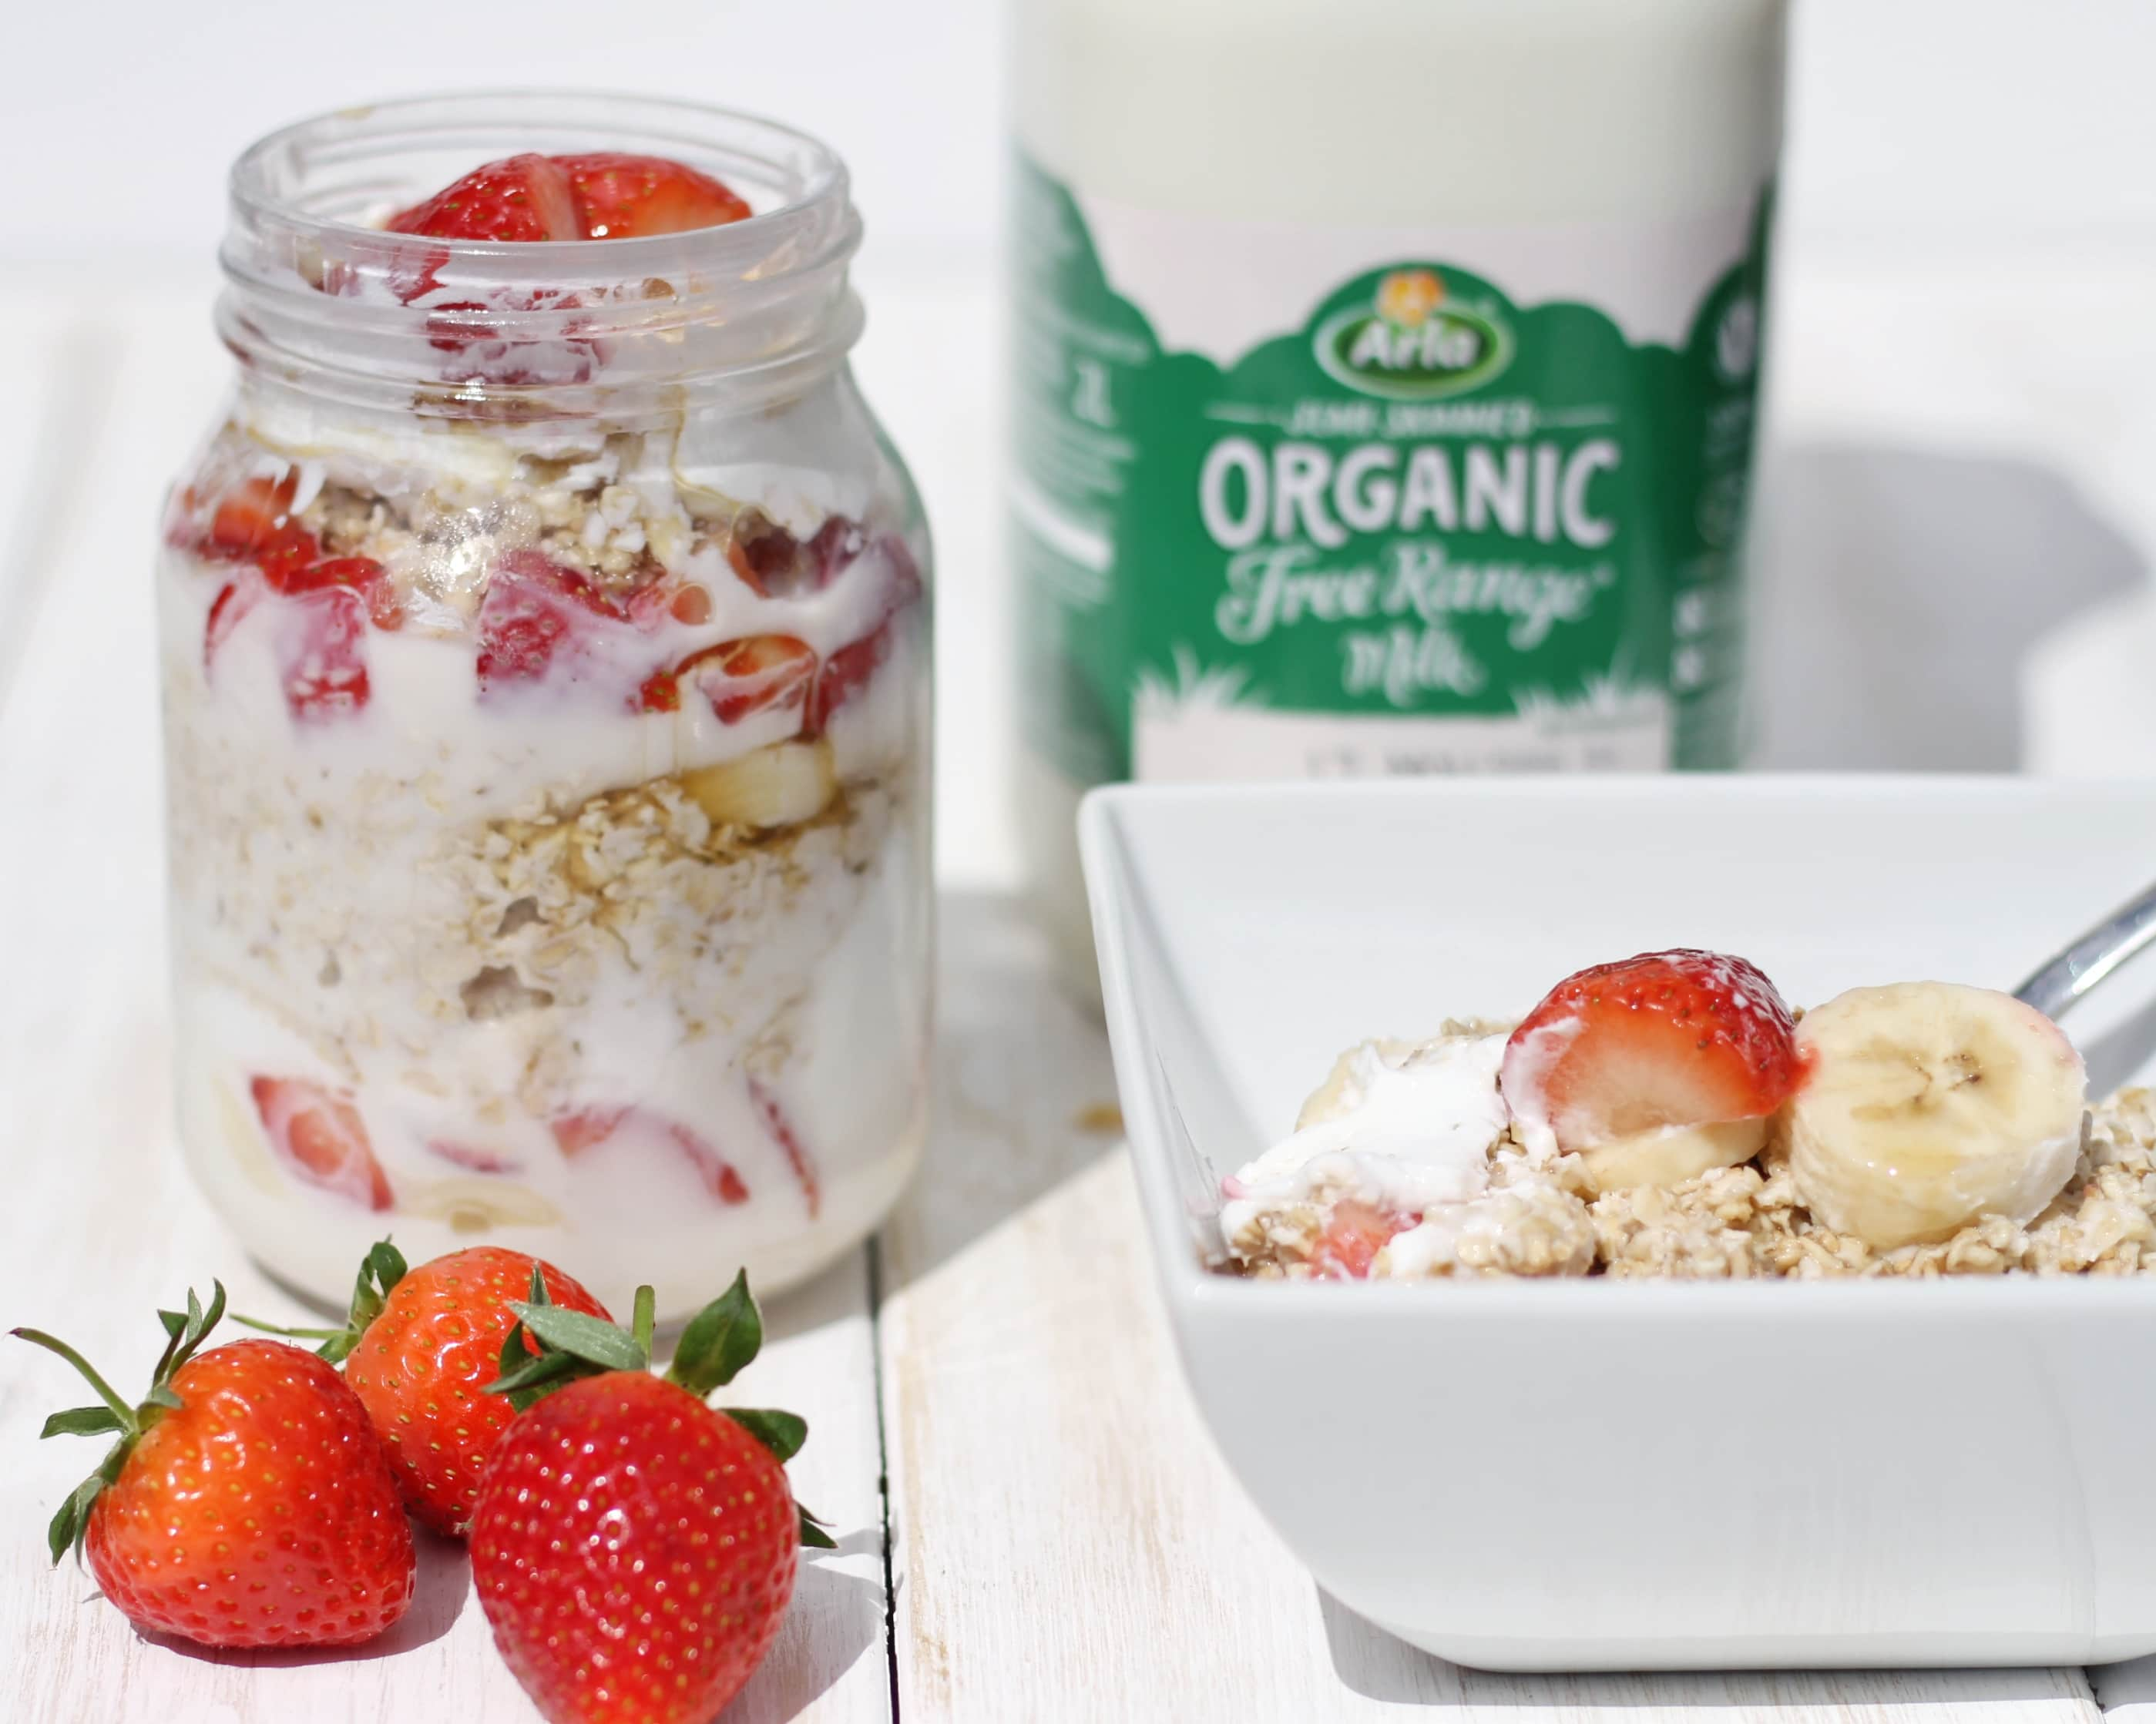 Overnight oats with Arla organic milk - a jar full of fruit and oats with a serving in a bowl and organic mlik carton in the background